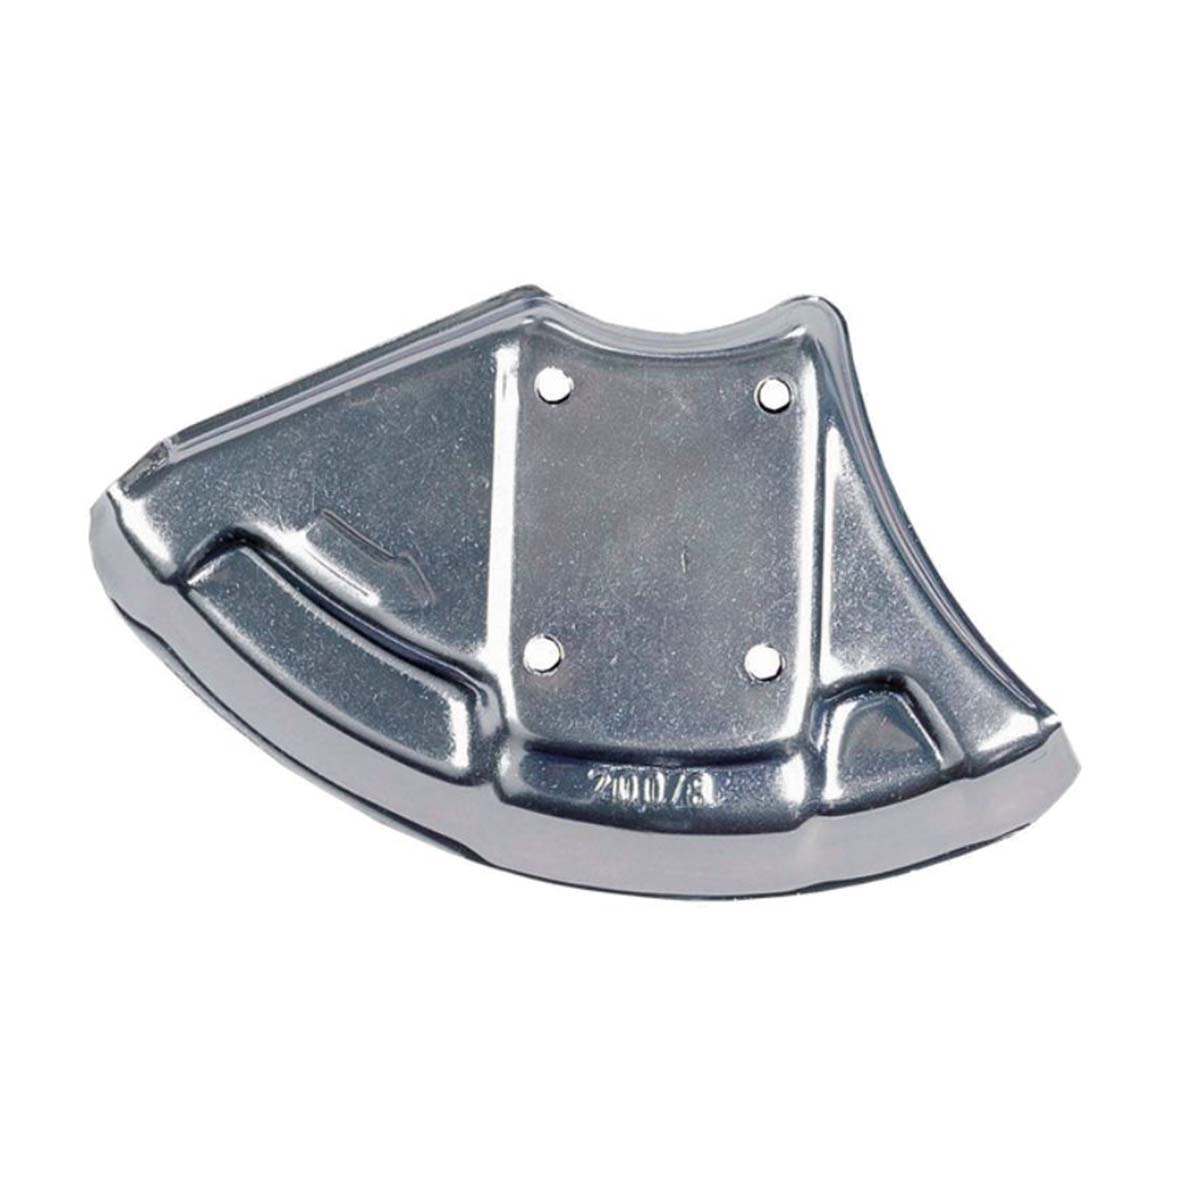 Husqvarna Trimmer Guard Assembly 537299501